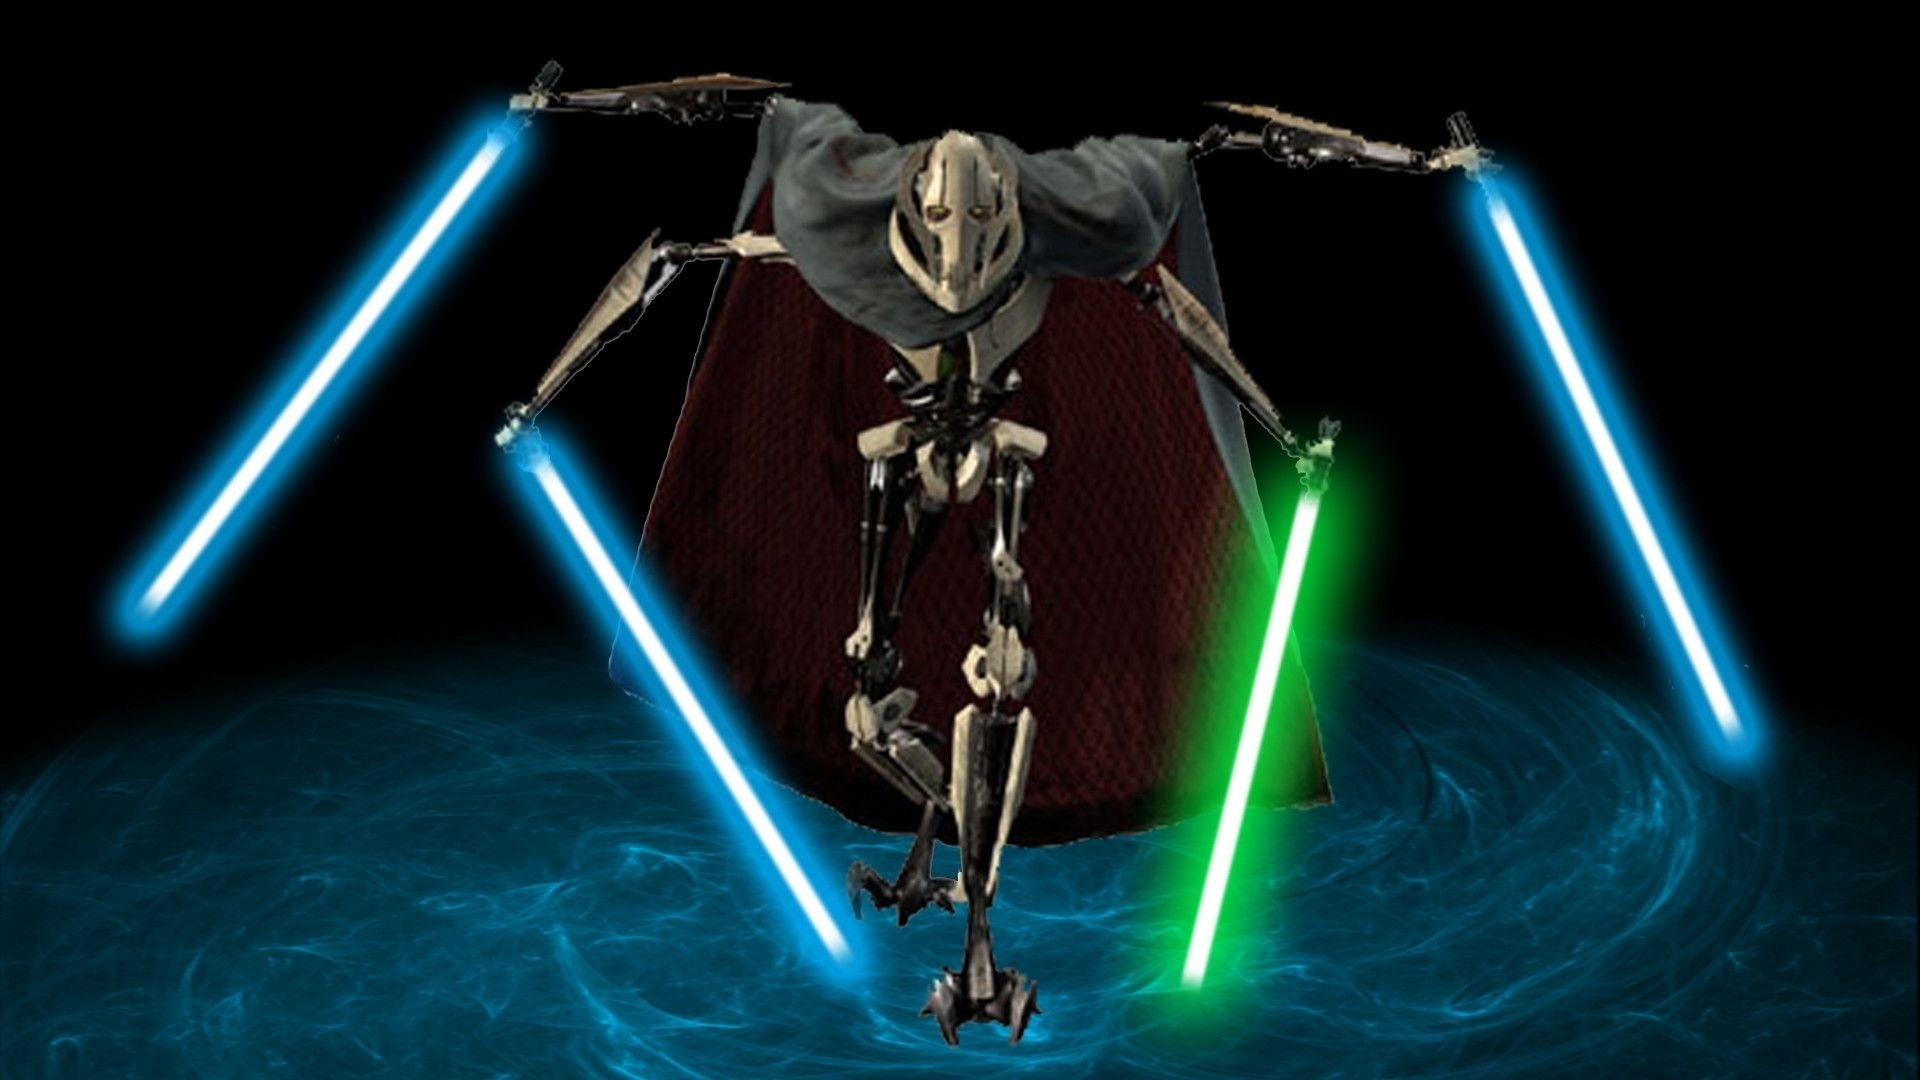 10 Latest General Grievous Wallpaper 1920X1080 FULL HD 1920×1080 For PC Background